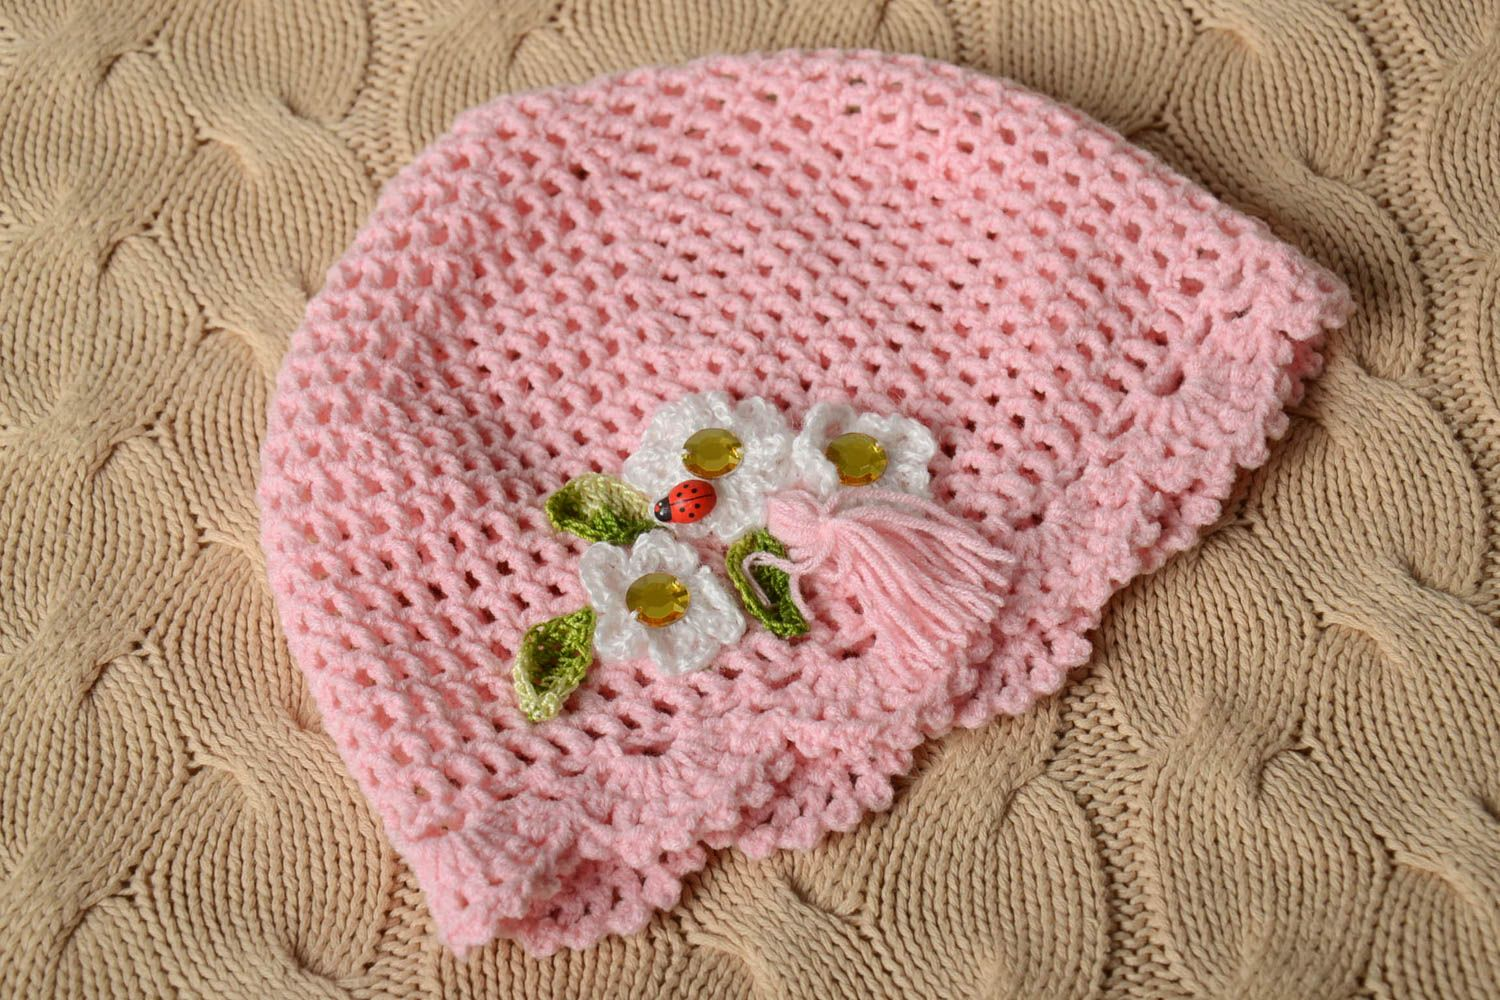 7921ed528b3 Notice  Undefined variable  cat in  home newmadeheart prod cache . Handmade  cute baby hats crochet baby hat funny hats kids clothing gifts ...